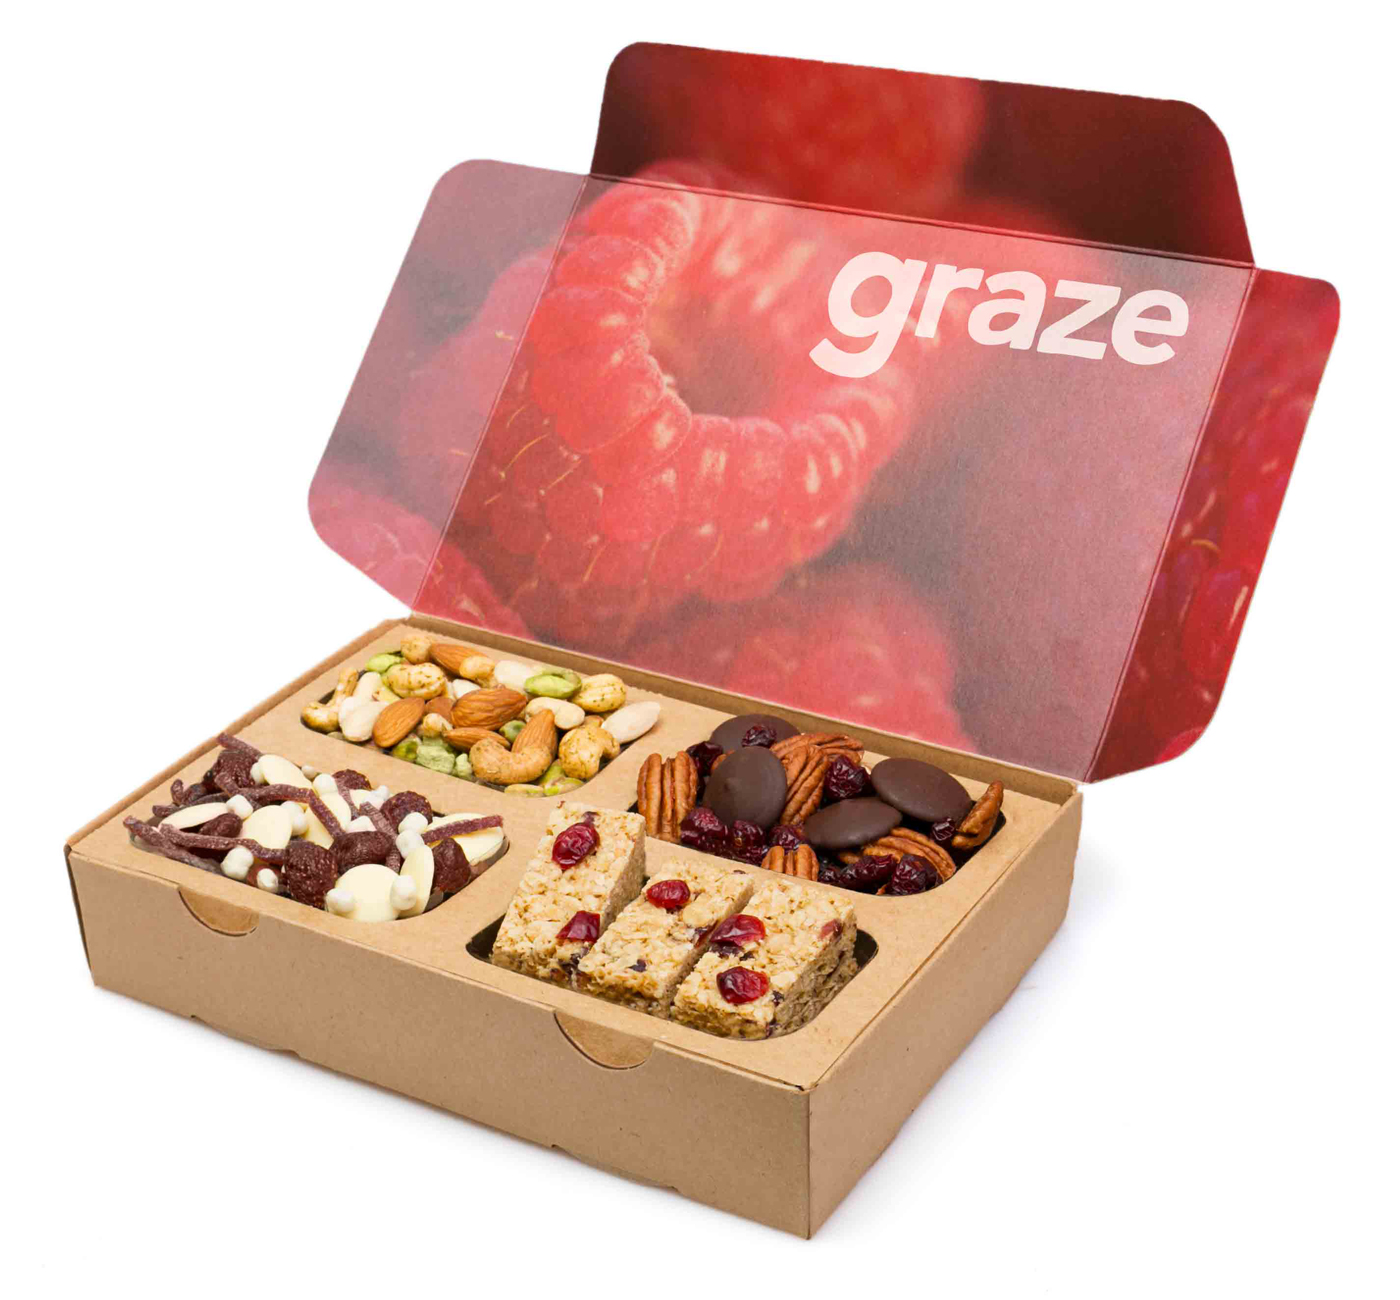 Graze food subscription box